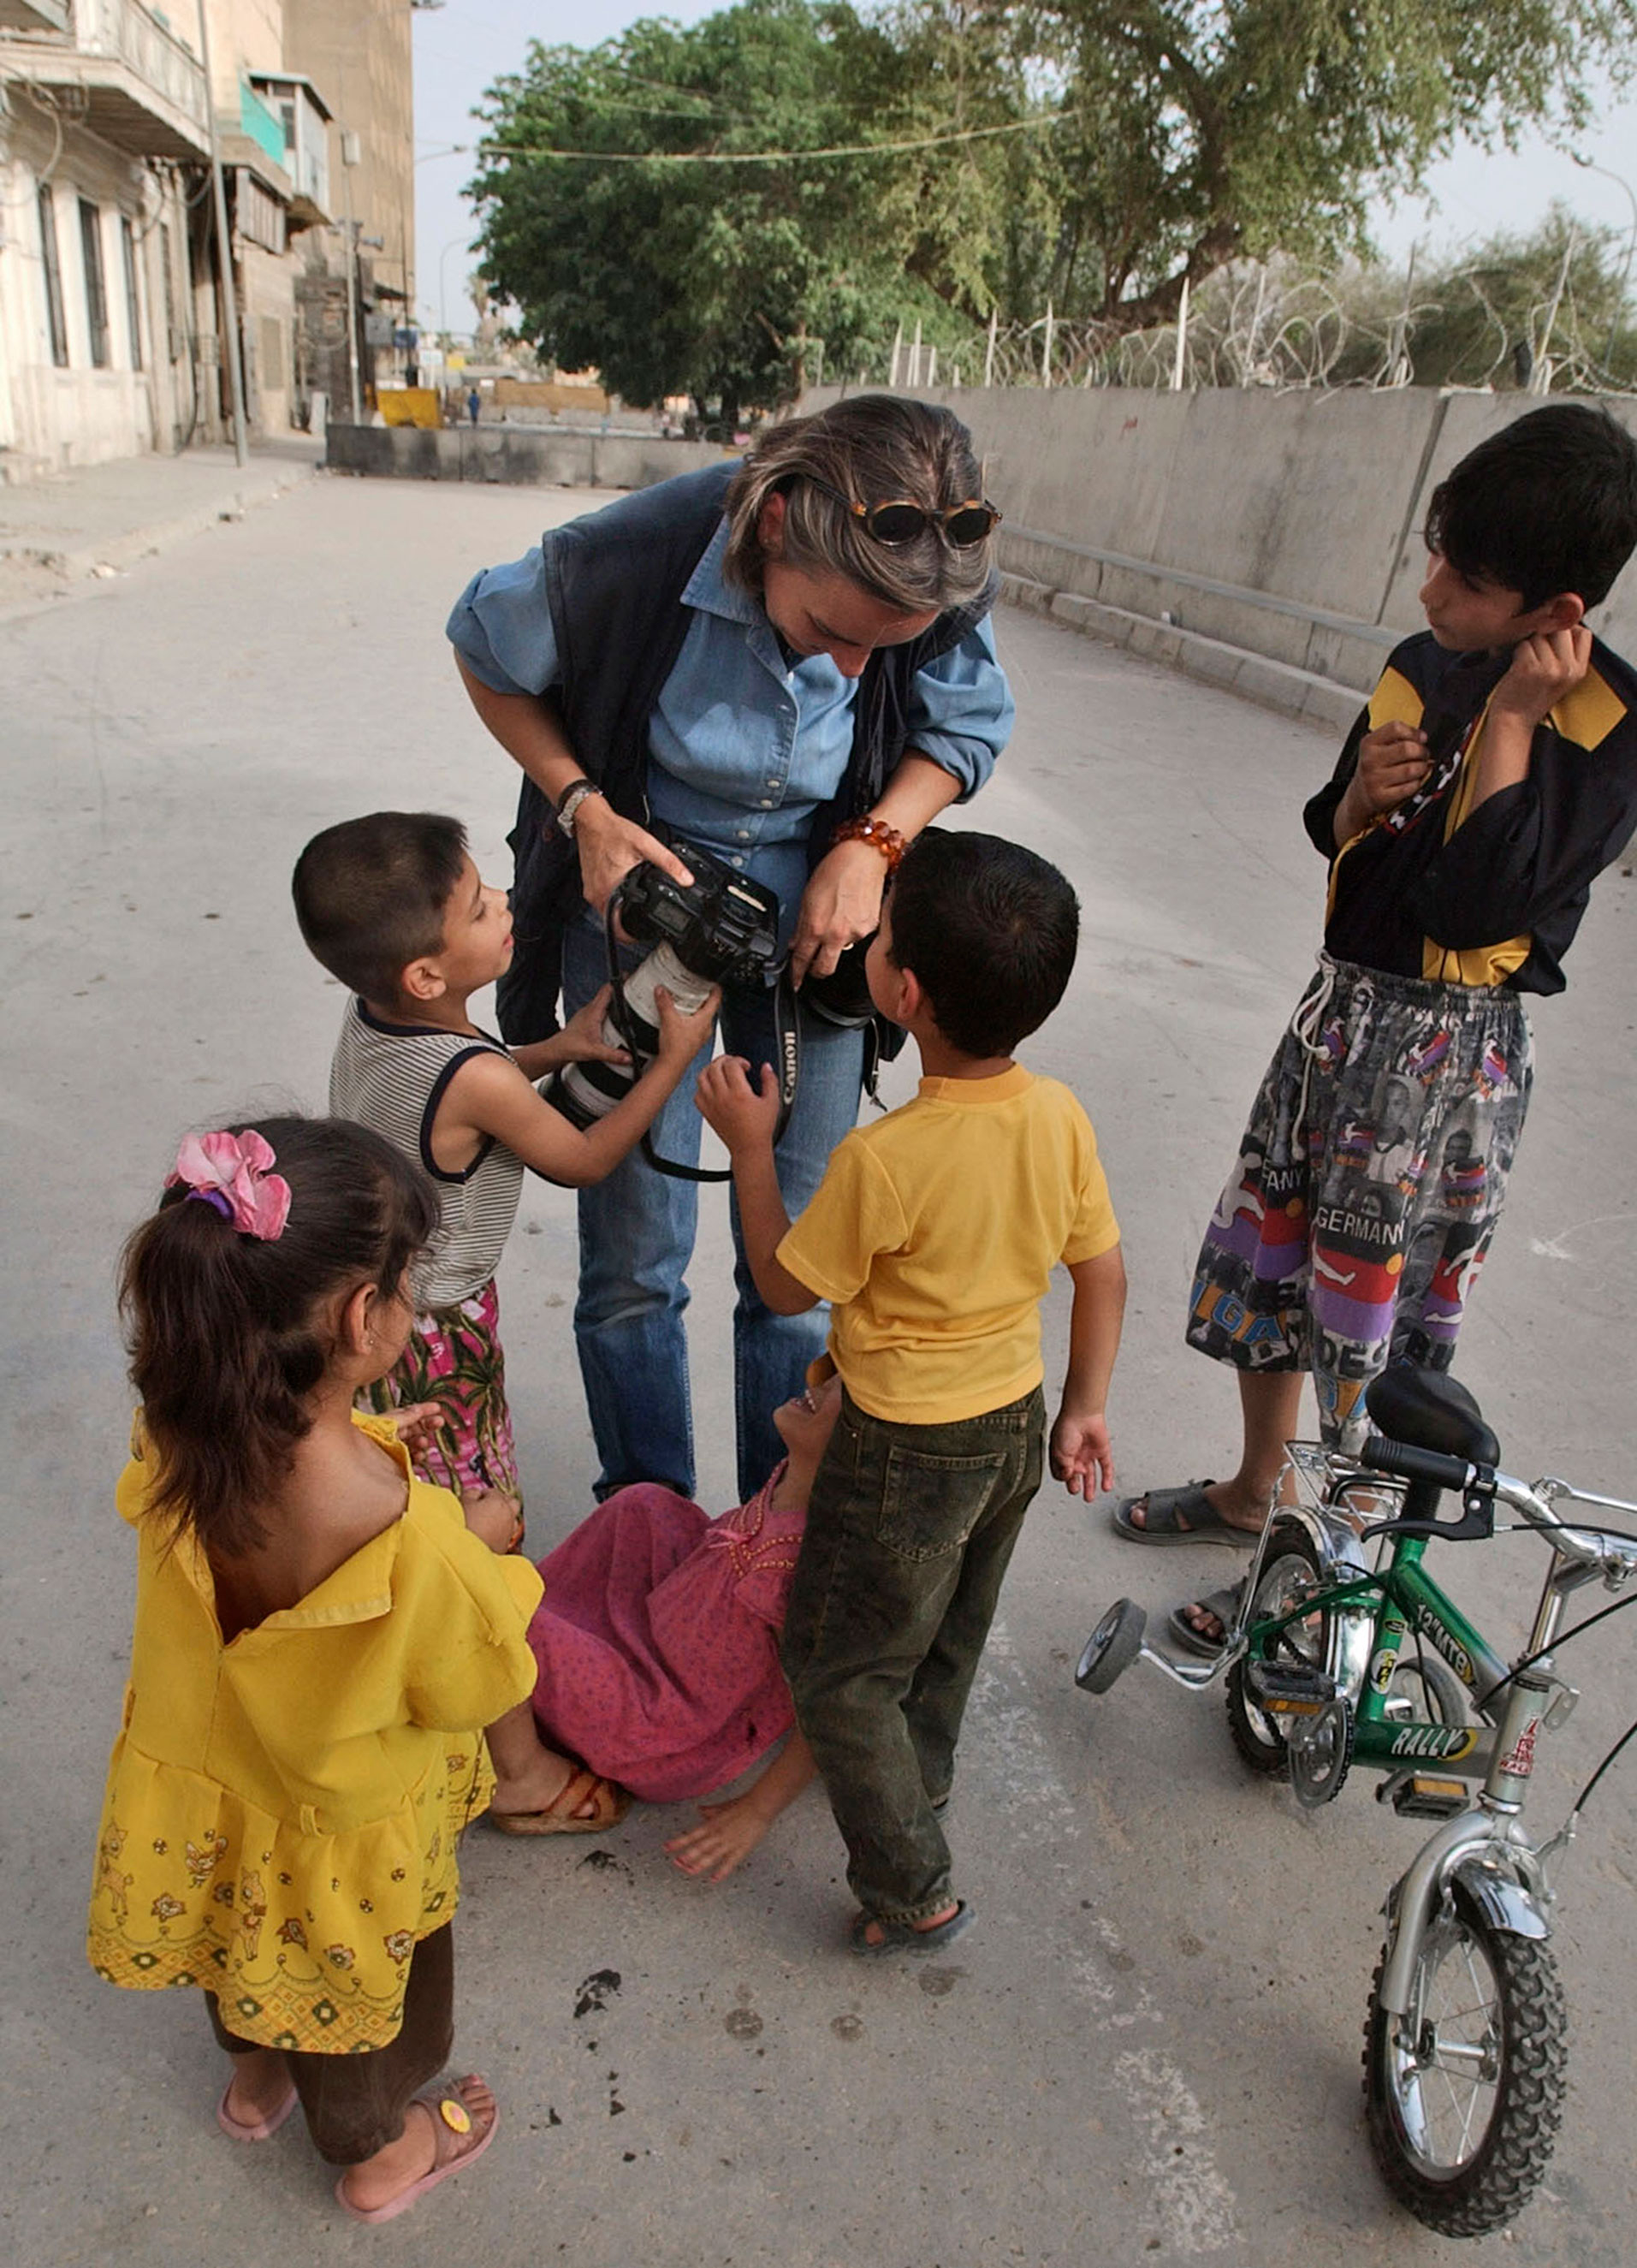 Anja Niedringhaus shows Iraqi children their pictures in Baghdad in 2004.